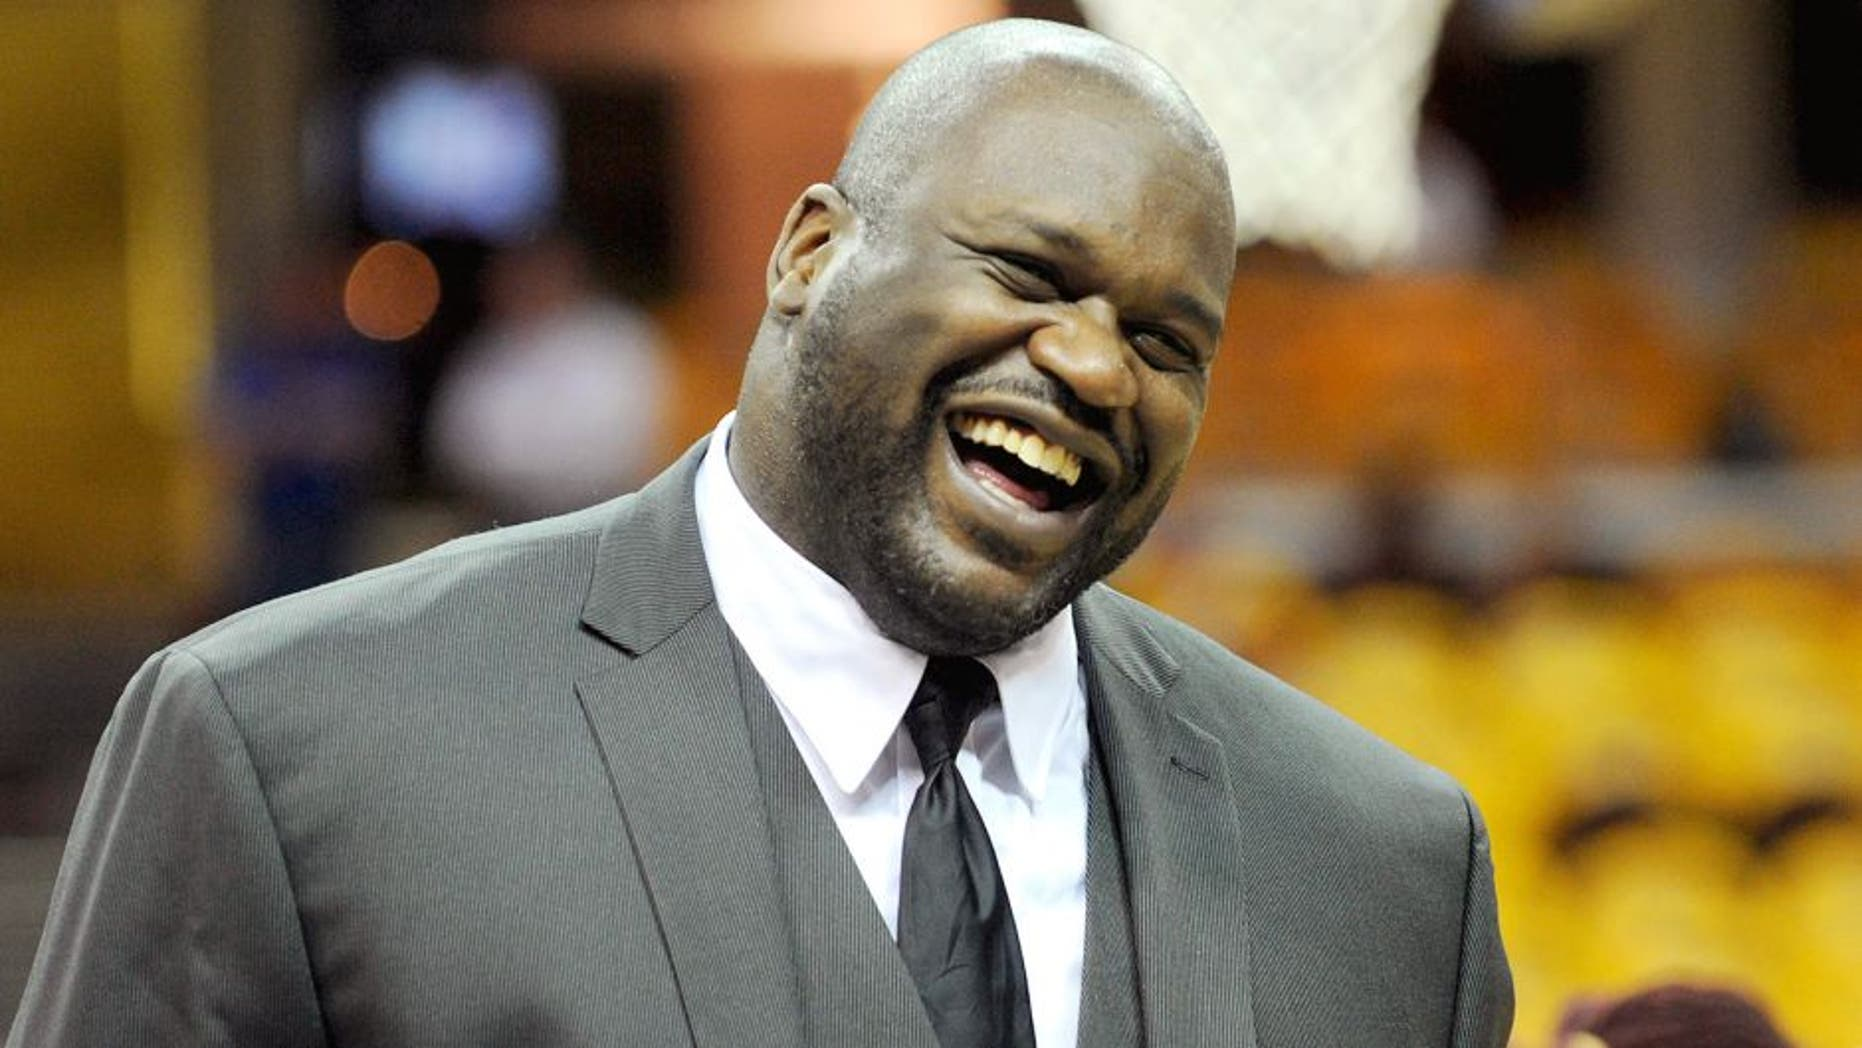 May 26, 2015; Cleveland, OH, USA; TNT analyst Shaquille O'Neal laughs on the court before game four of the Eastern Conference Finals of the NBA Playoffs between the Cleveland Cavaliers and the Atlanta Hawks at Quicken Loans Arena. Mandatory Credit: Ken Blaze-USA TODAY Sports